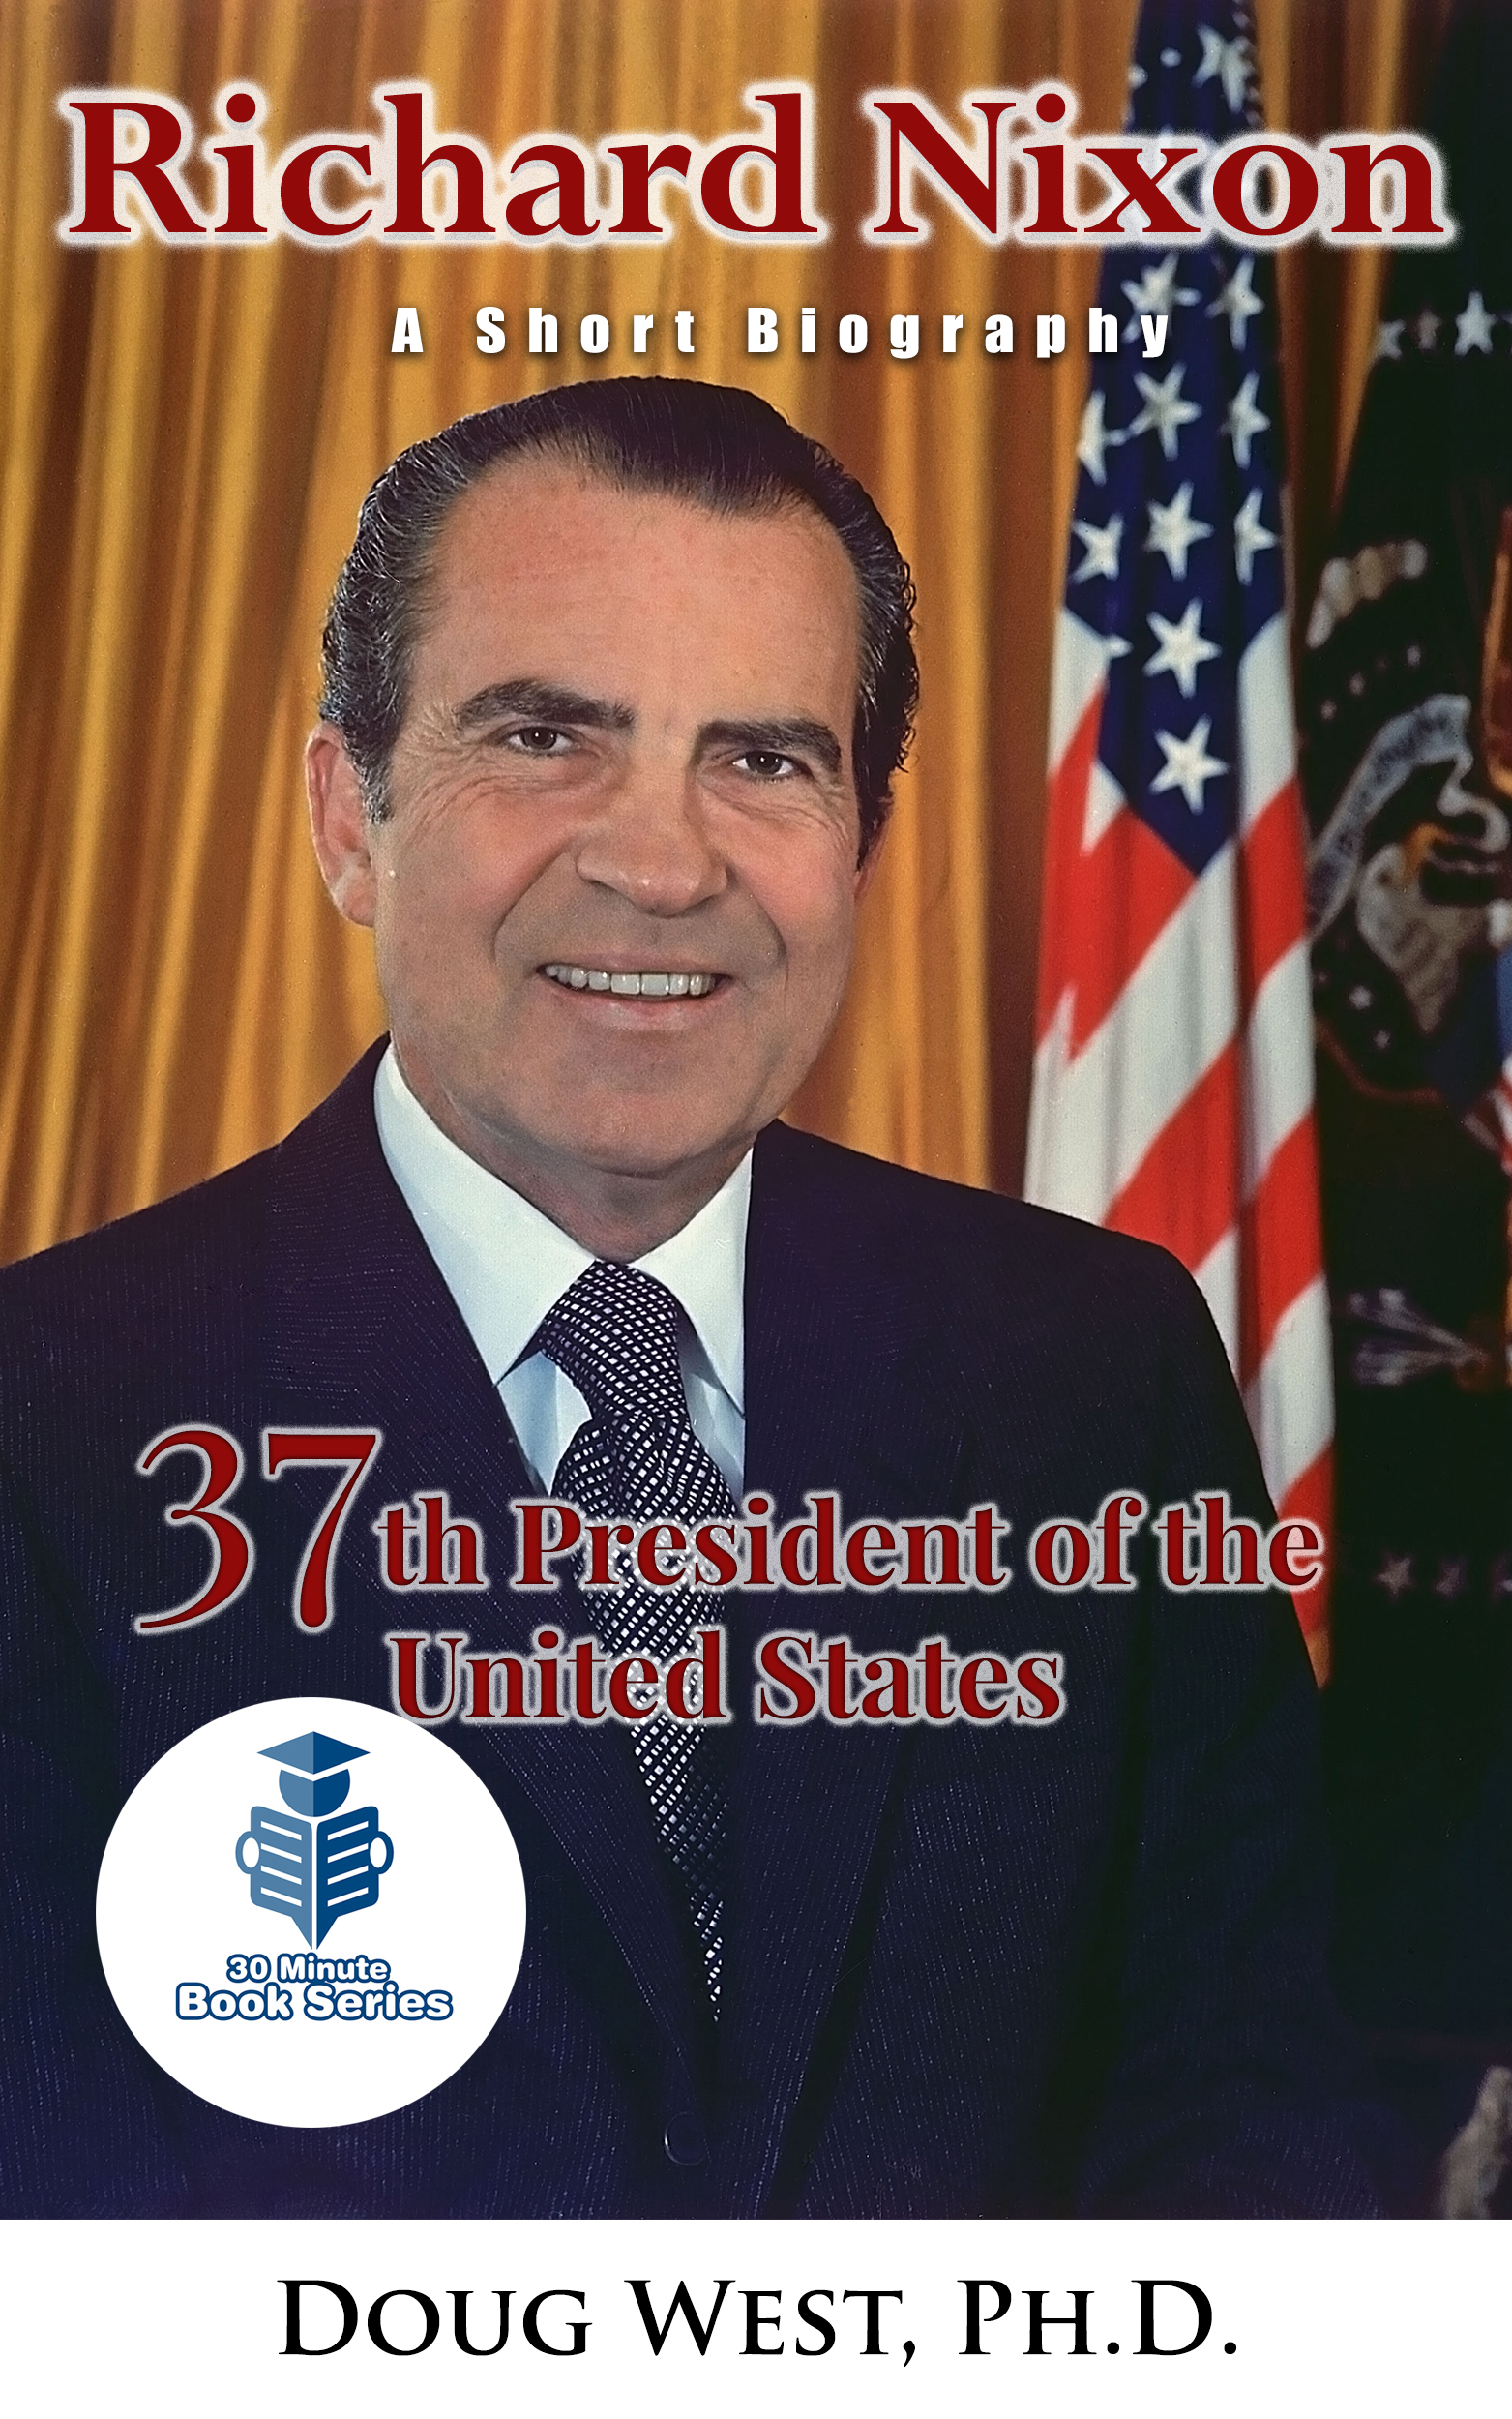 a biography of richard milhous nixon the 37th president of the united states of america